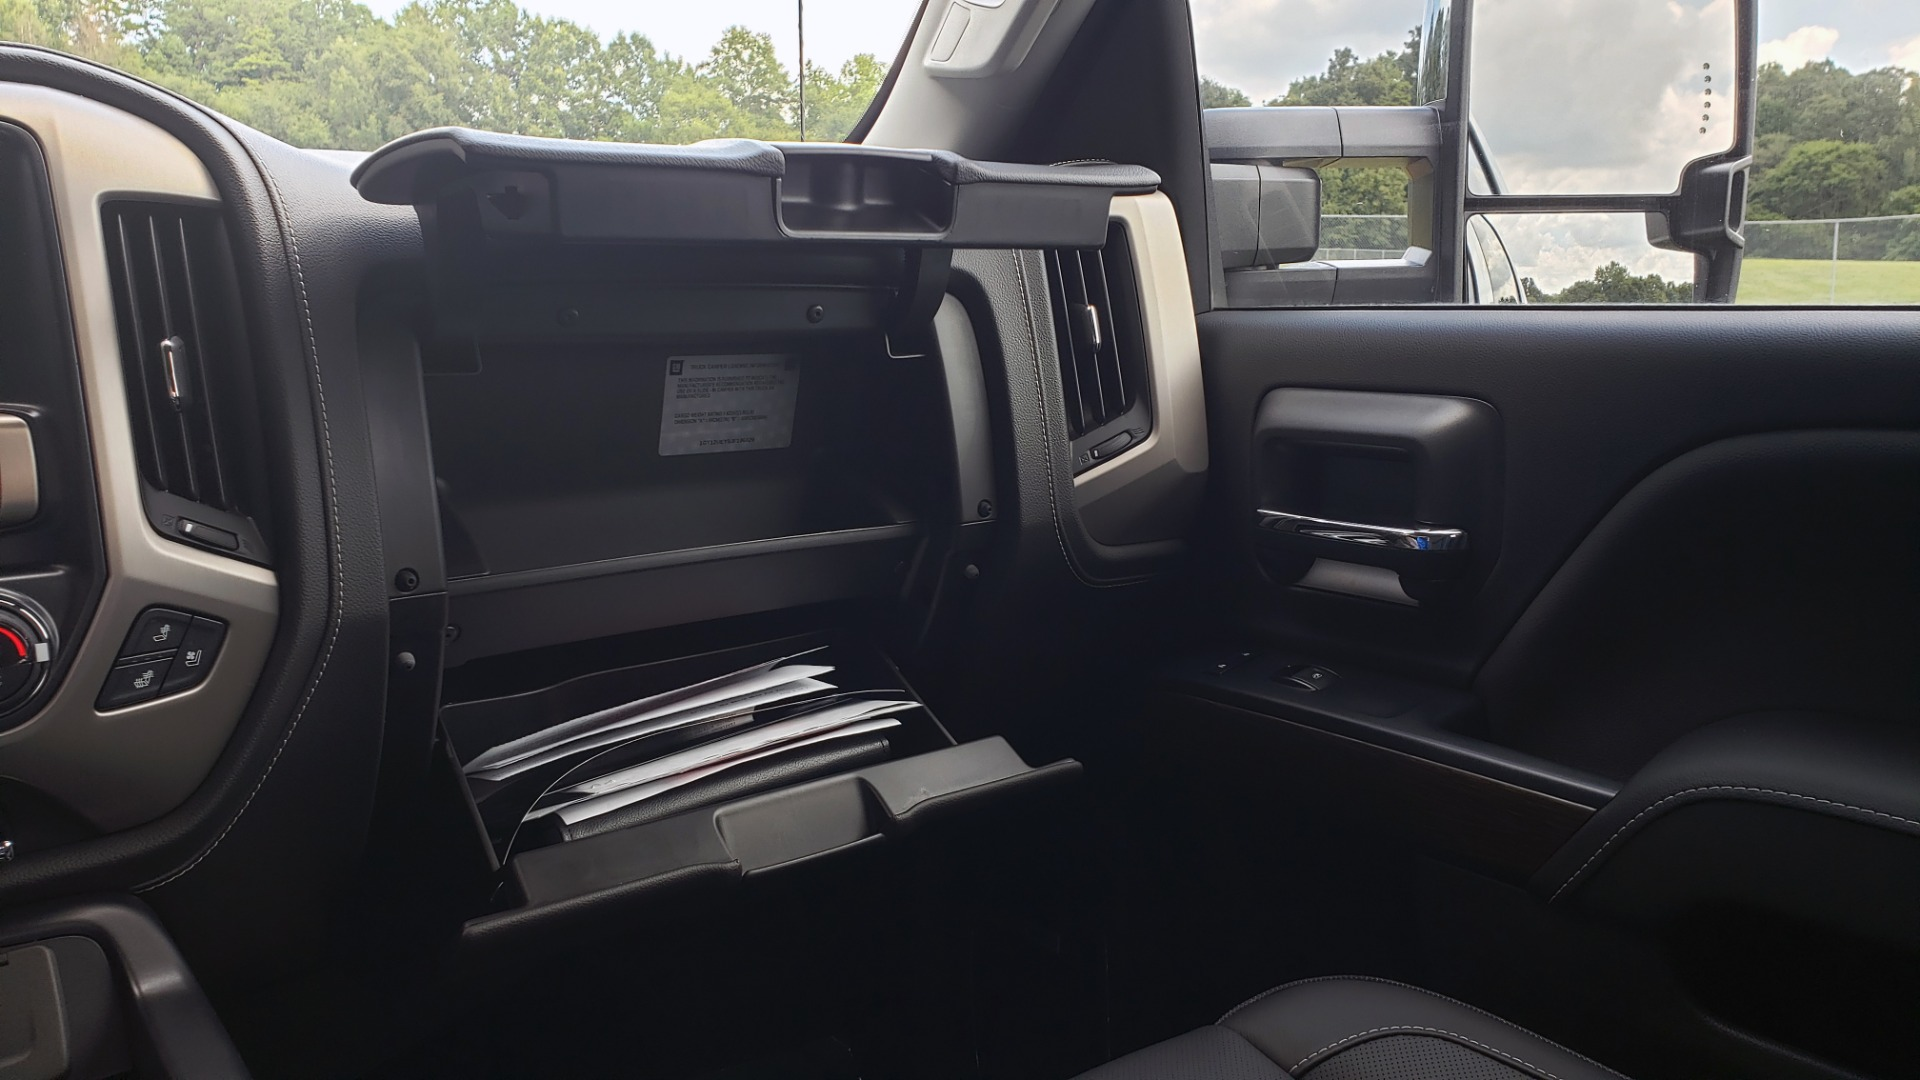 Used 2018 GMC SIERRA 2500HD DENALI 4WD / 6.6L DURAMAX / NAV / SUNROOF / BOSE / REARVIEW for sale Sold at Formula Imports in Charlotte NC 28227 58